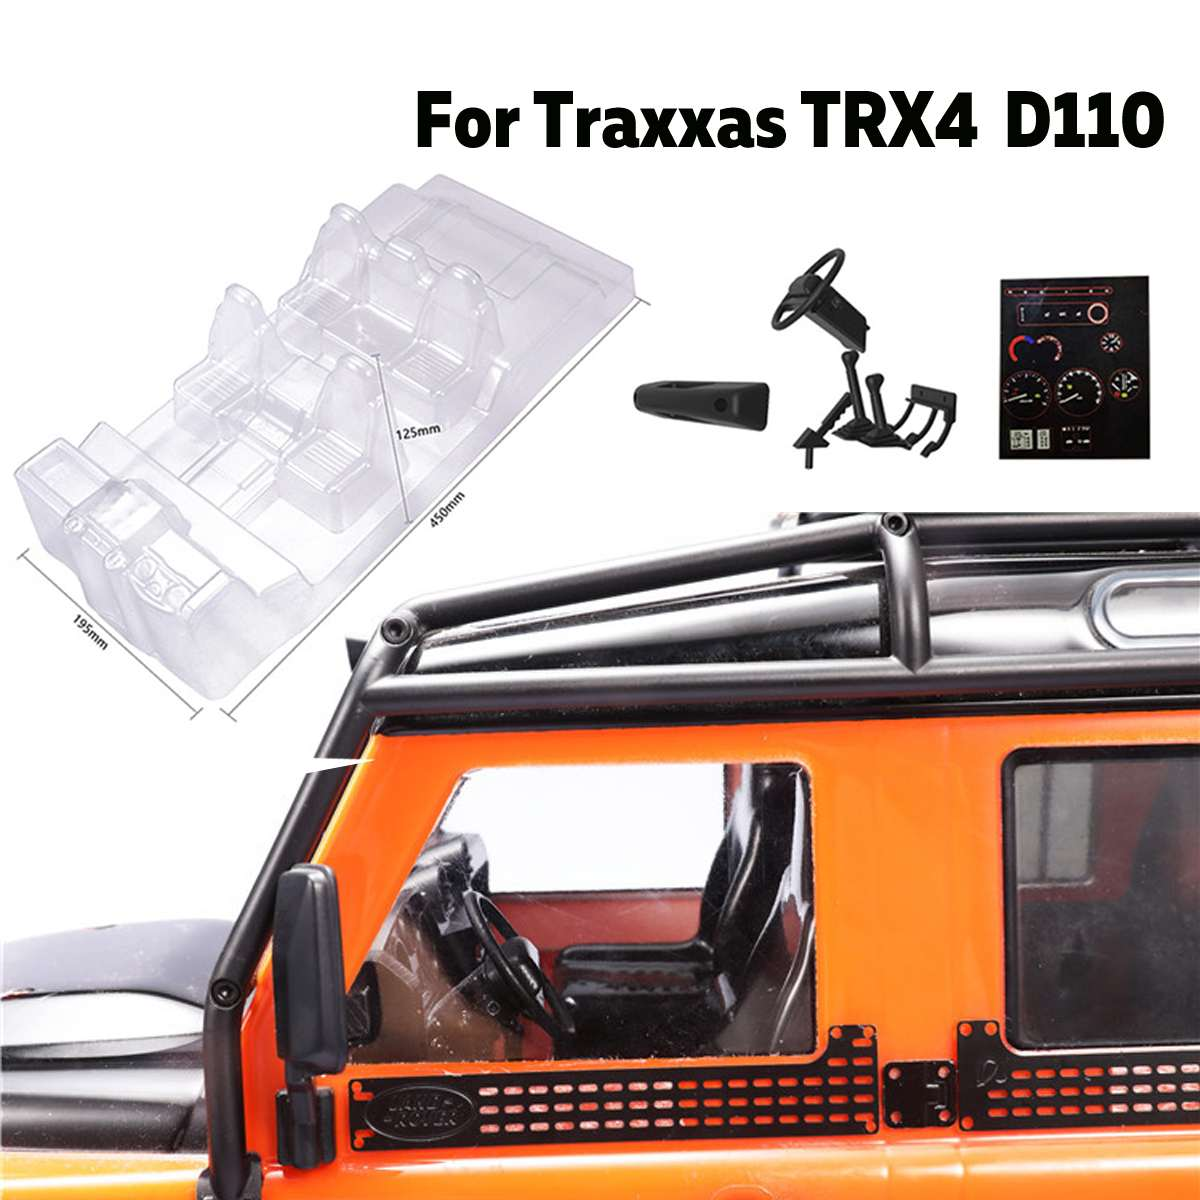 Simulation Interior Car Body Shell Decoration Car Cell RC Car Spare Parts for Traxxas TRX4 Defender D110 RCSimulation Interior Car Body Shell Decoration Car Cell RC Car Spare Parts for Traxxas TRX4 Defender D110 RC